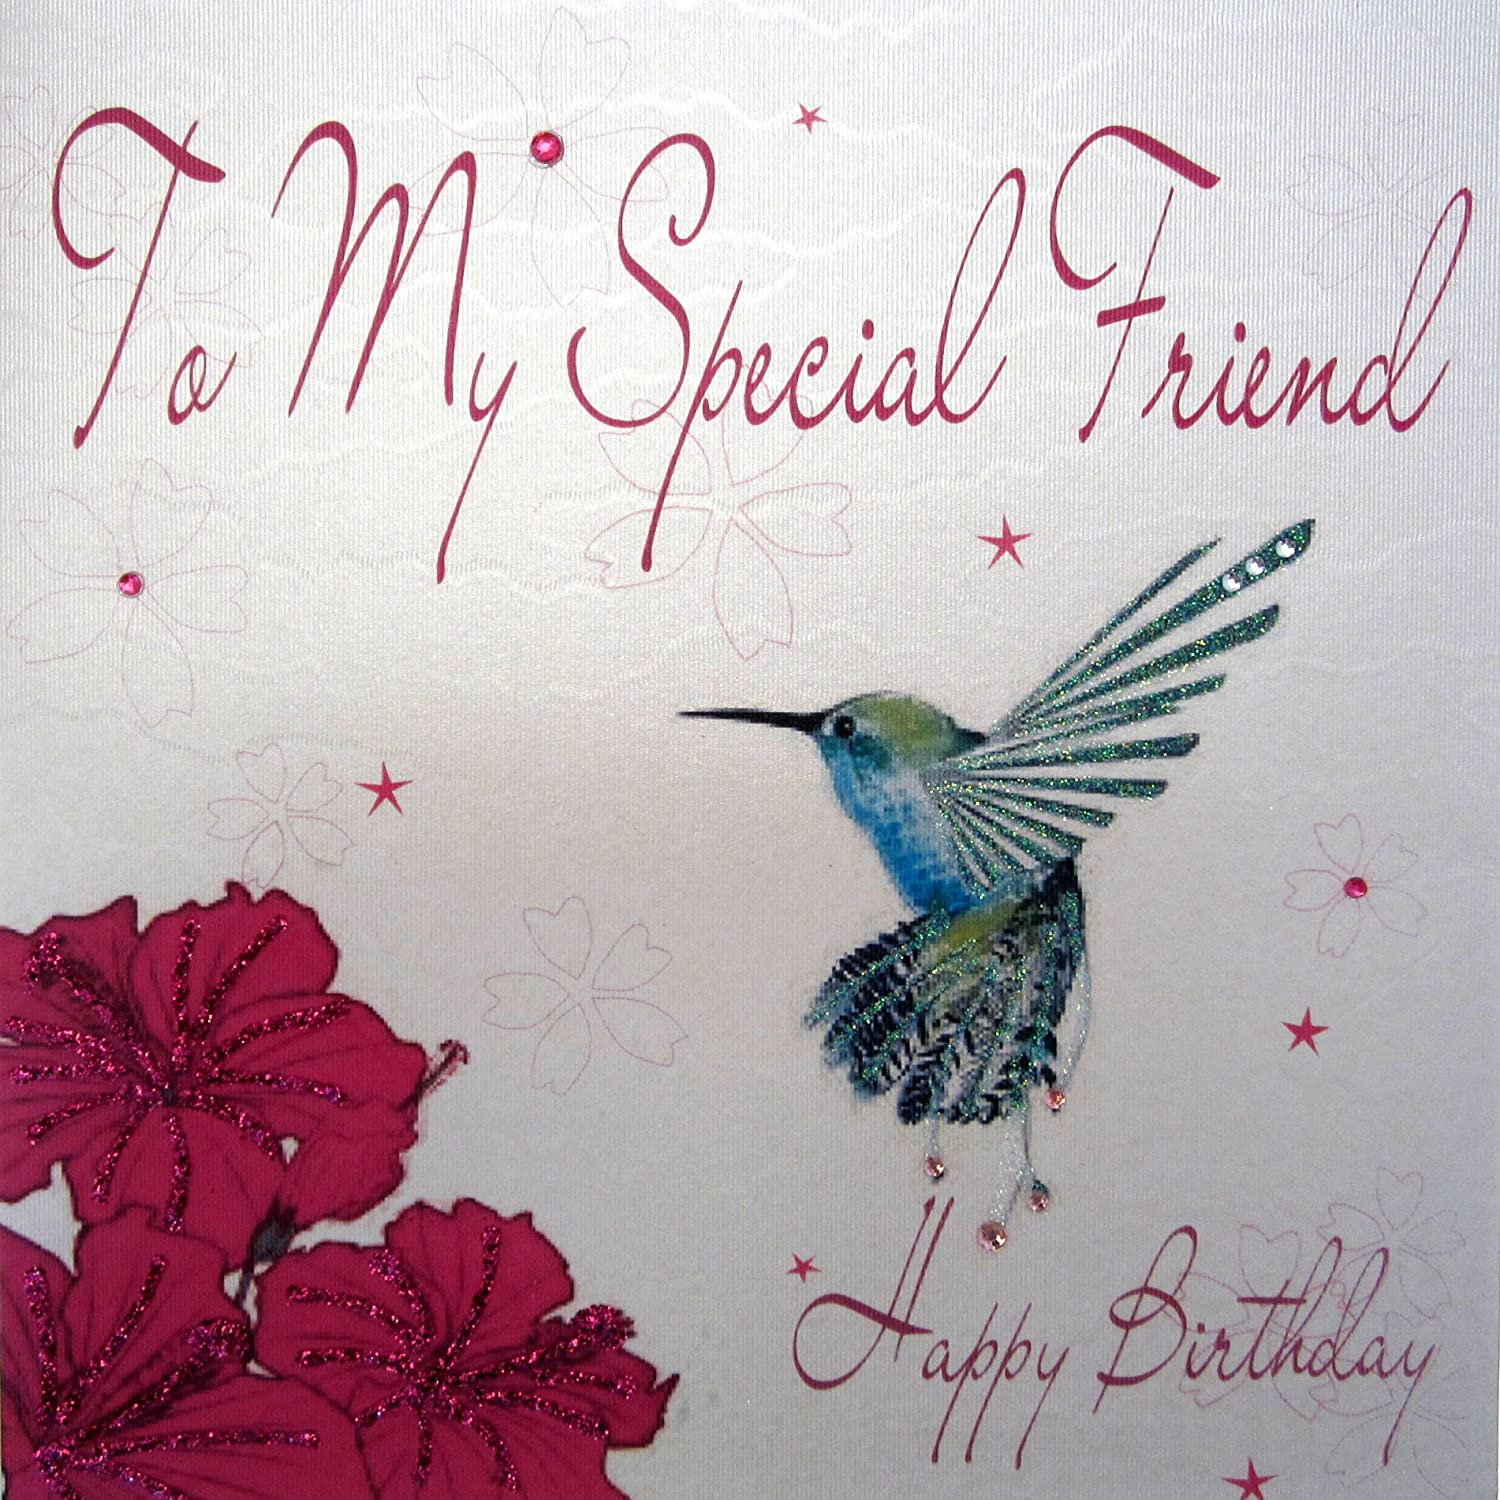 WHITE COTTON CARDS WB201 To My Special Friend Happy Birthday Handmade Card Humingbird Amazoncouk Kitchen Home